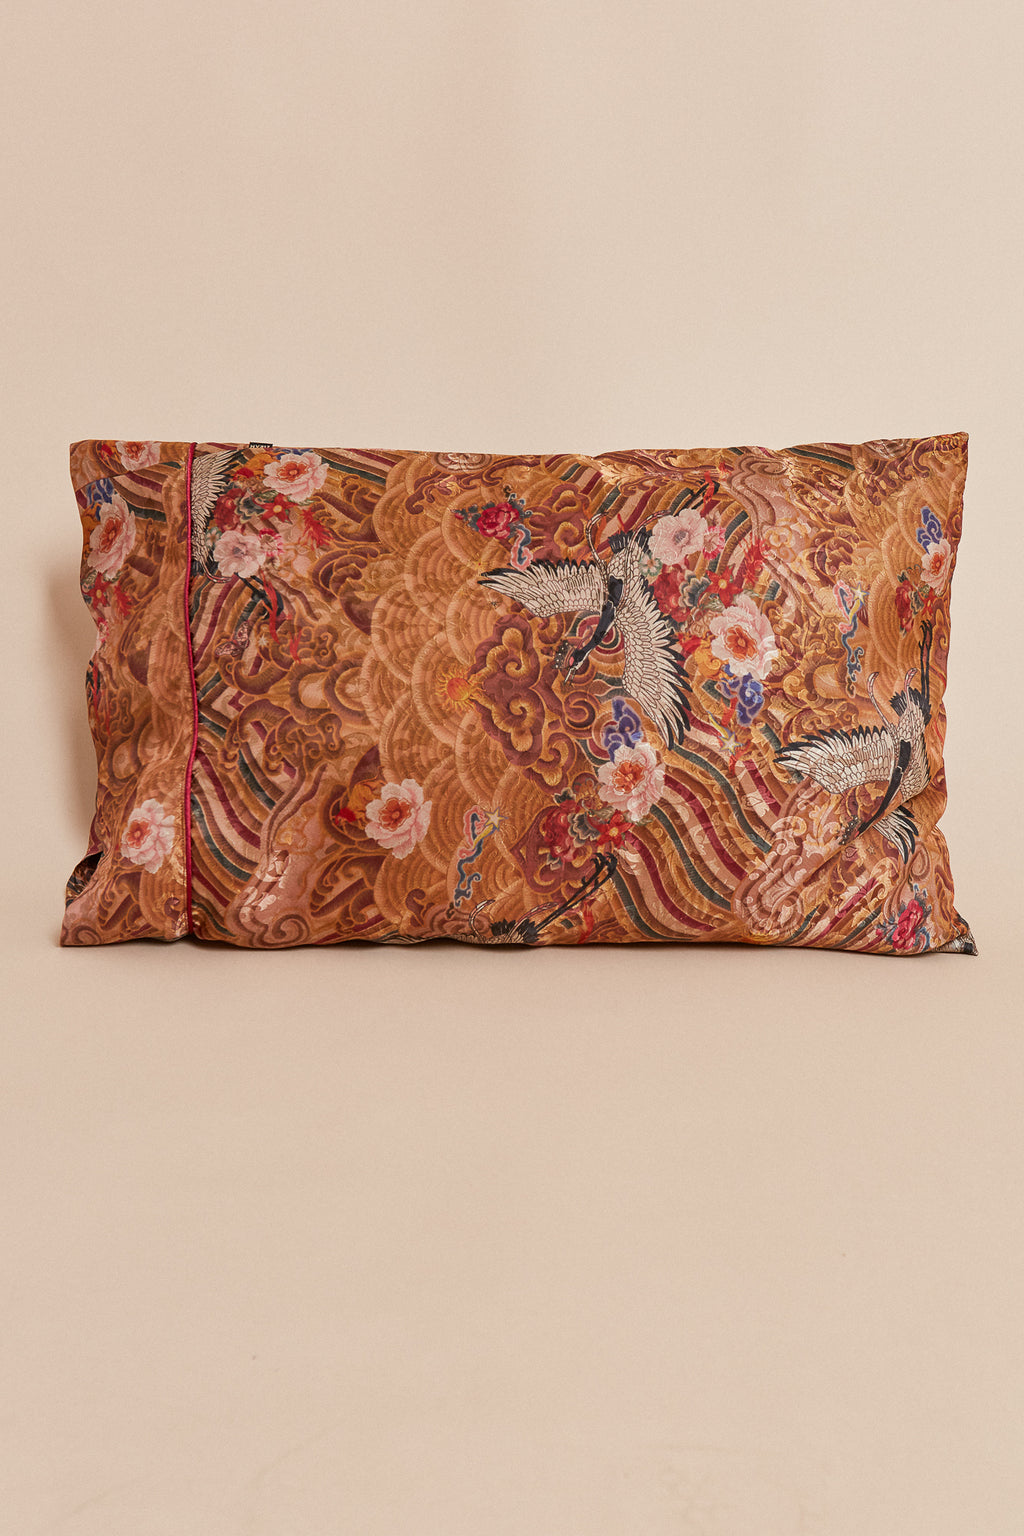 Golden Crane Pillowcase